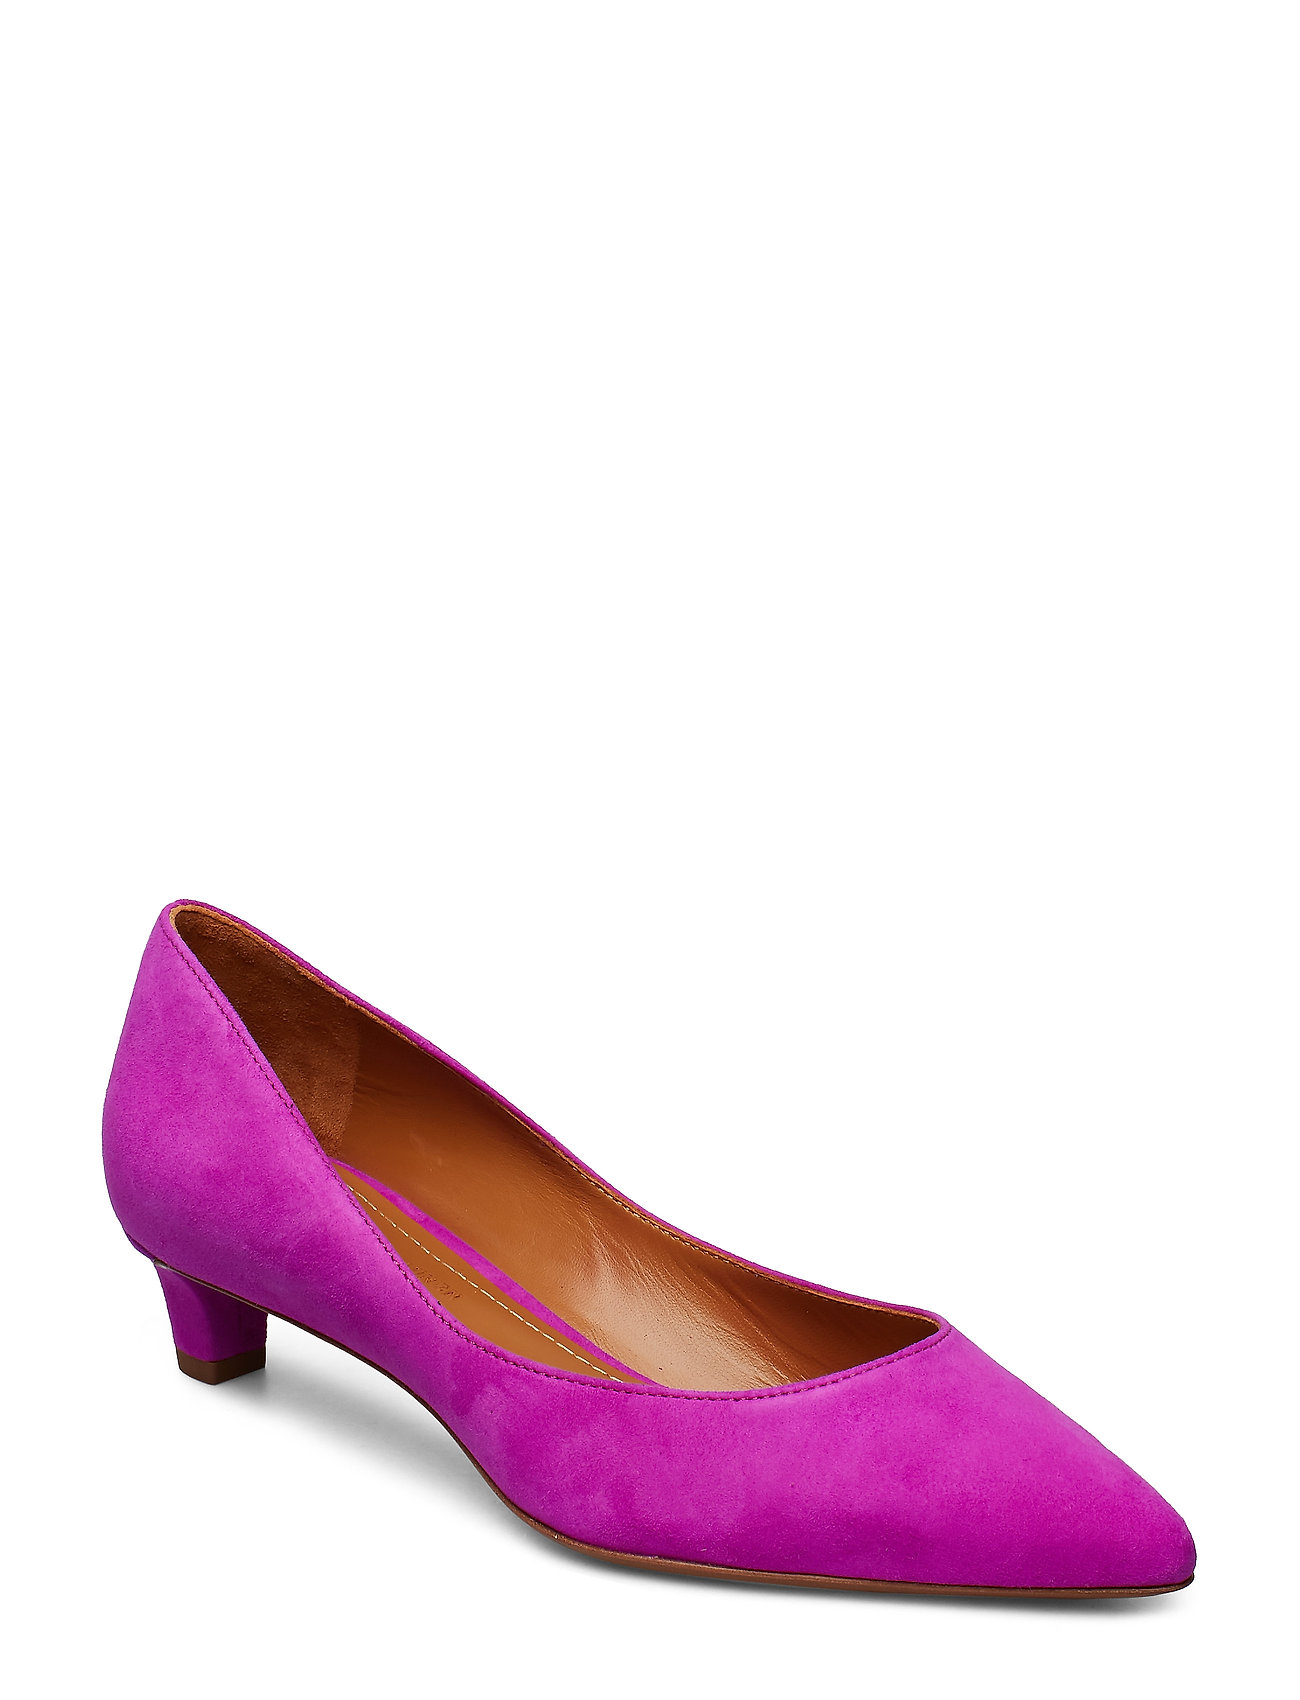 sabryna Luxe drsbright pm MagentaPolo Lauren Ralph Suede 8nmwv0N